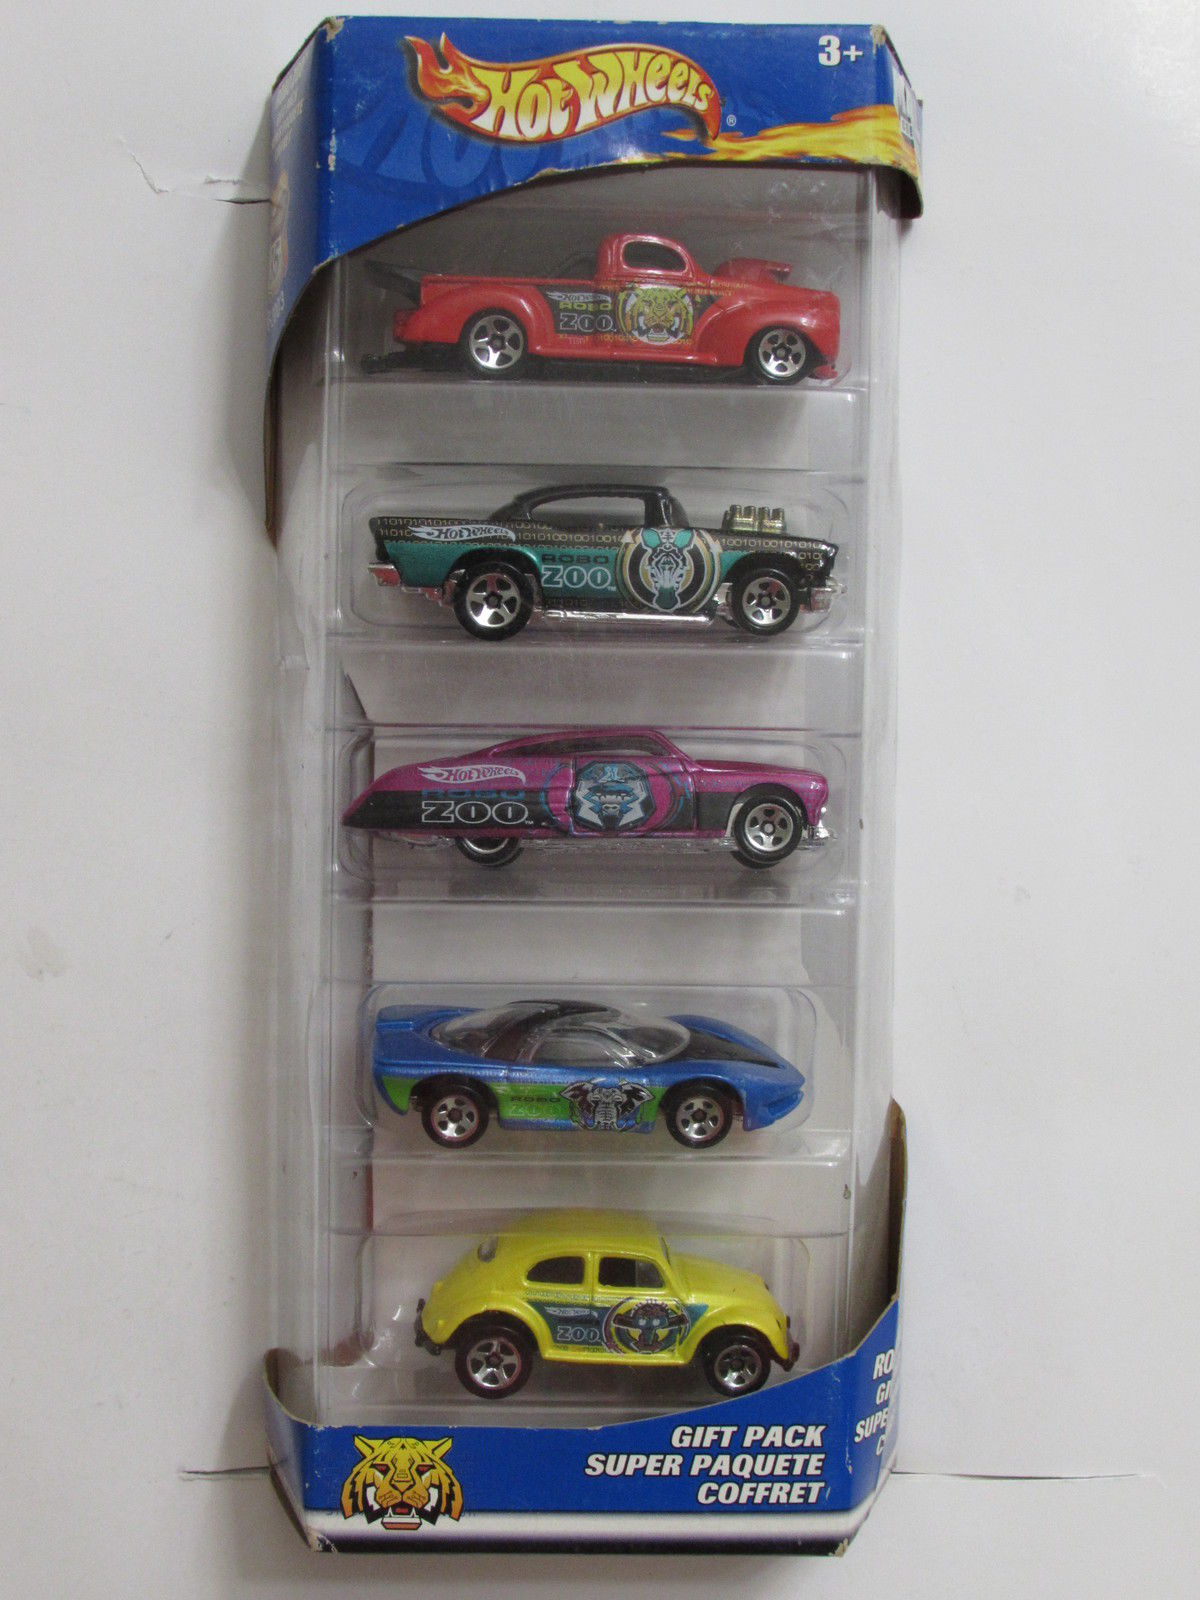 HOT WHEELS 5 CAR PACK GIFT PACK SUPER PAQUETE ROBO ZOO BEETLE CHEVY FORD